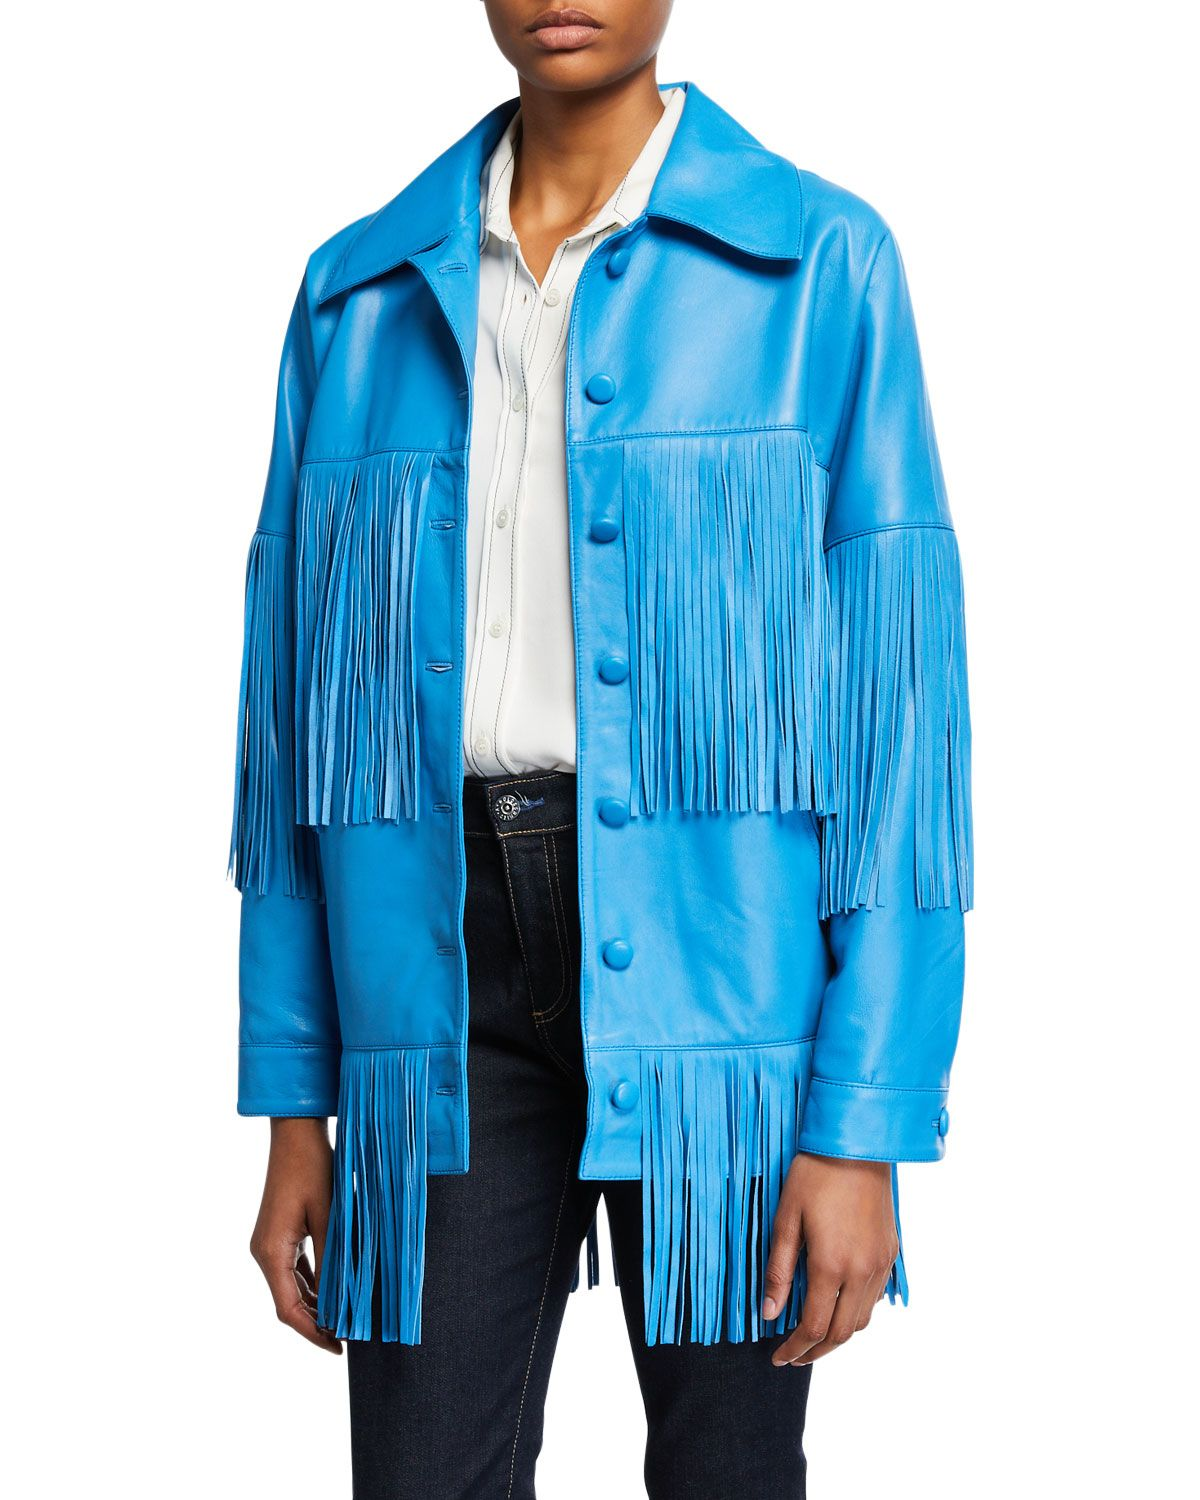 dan-cassab-loretta-lamb-leather-fringe-jacket-blue